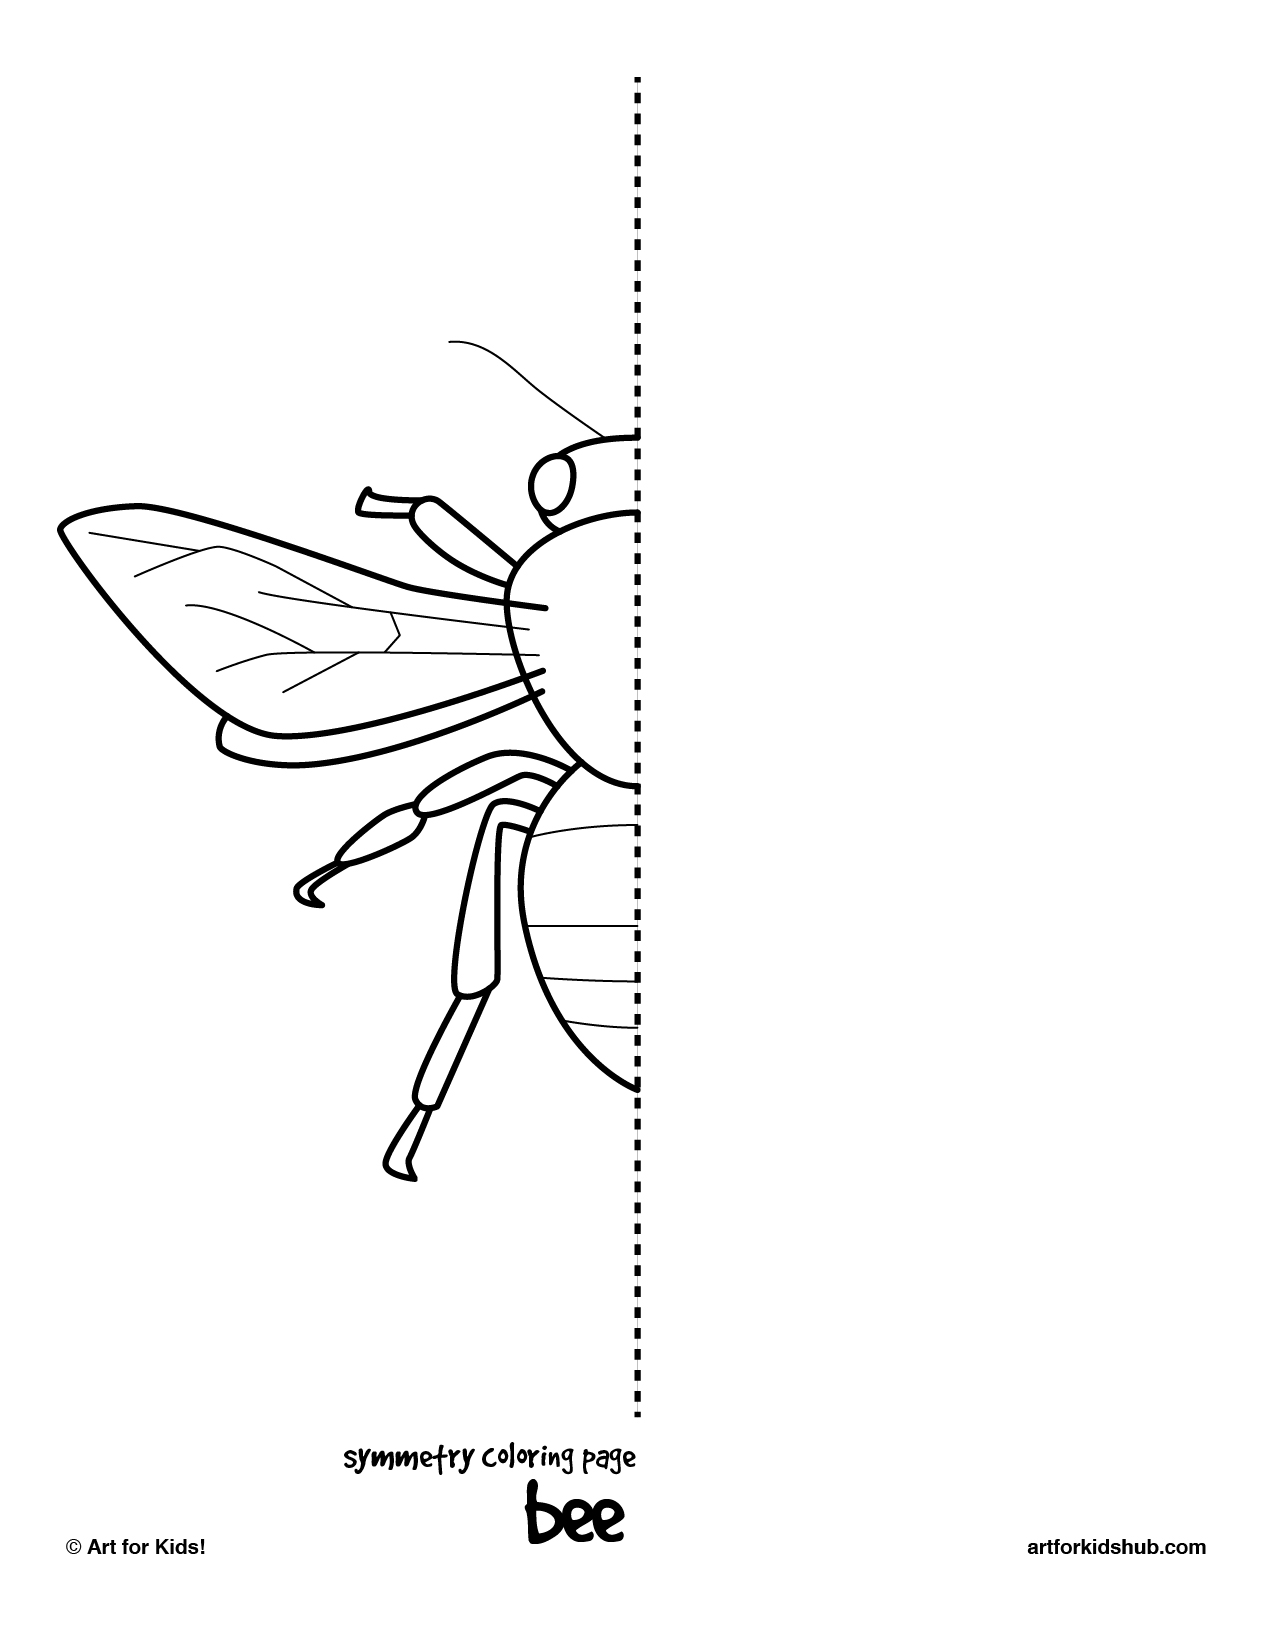 worksheet Bug Worksheets 10 free coloring pages bug symmetry art for kids hub page beetle